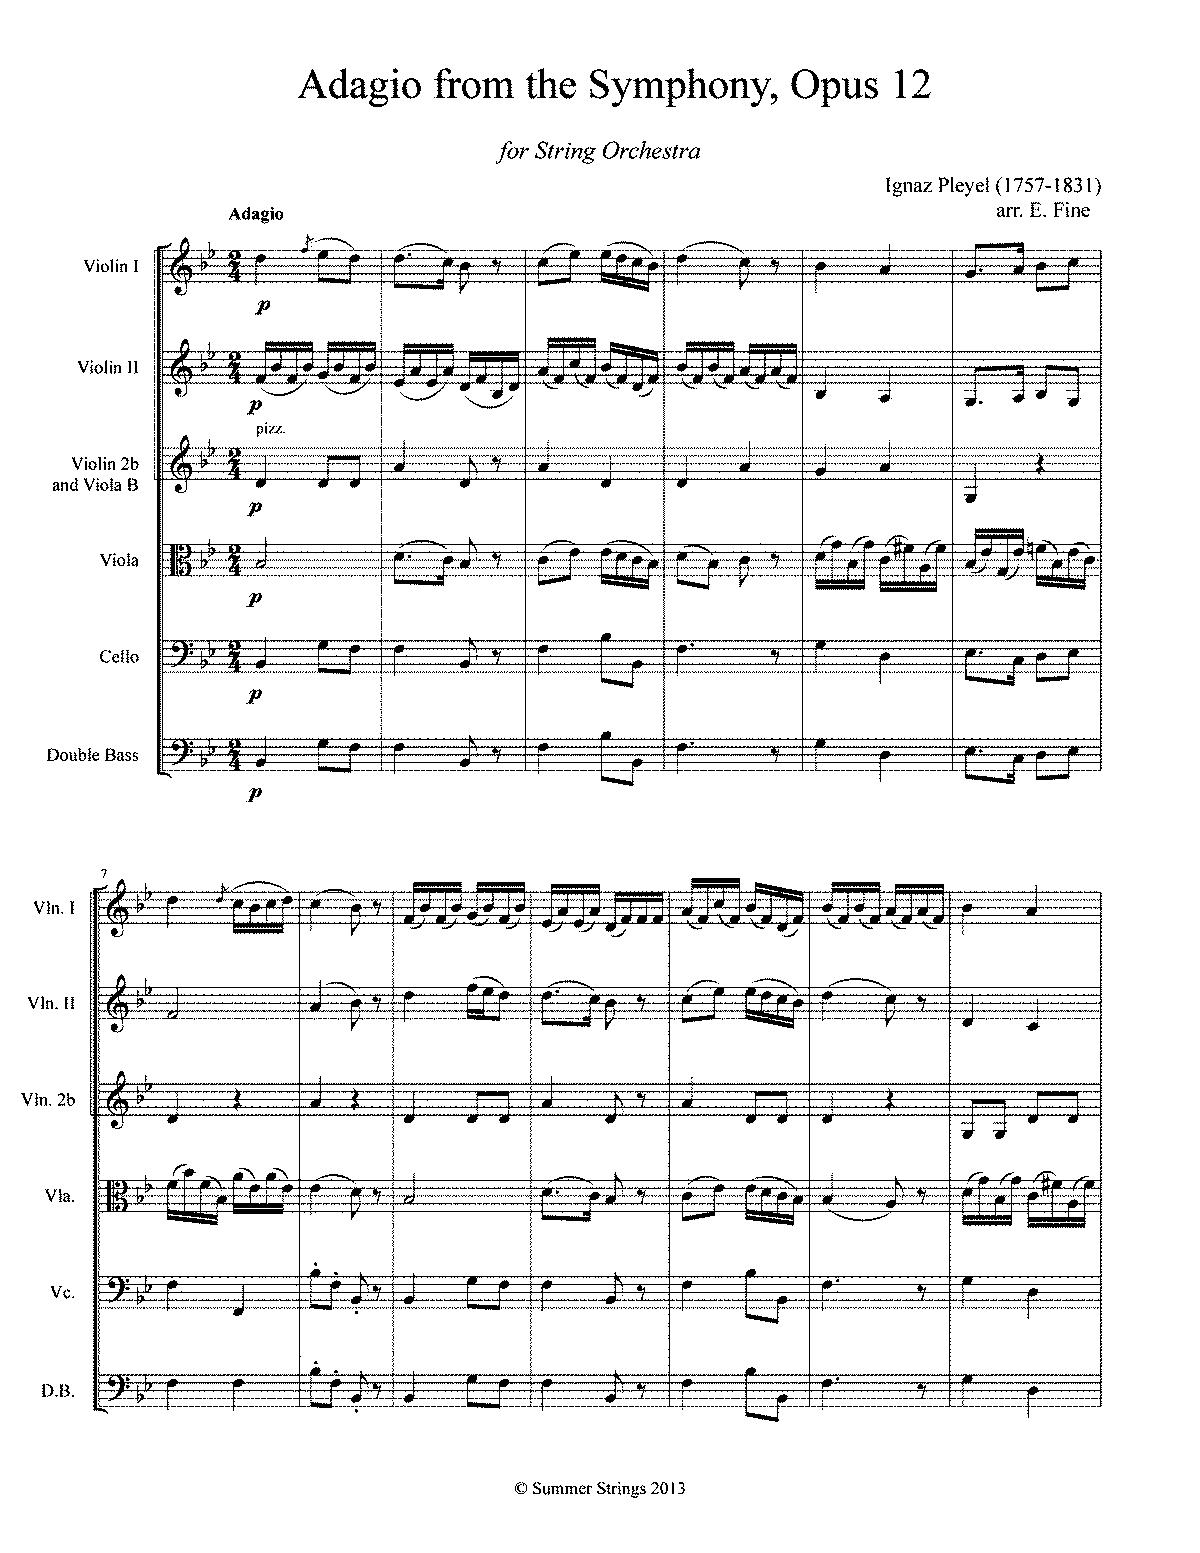 PMLP349371-Pleyel Adagio Score and Parts.pdf